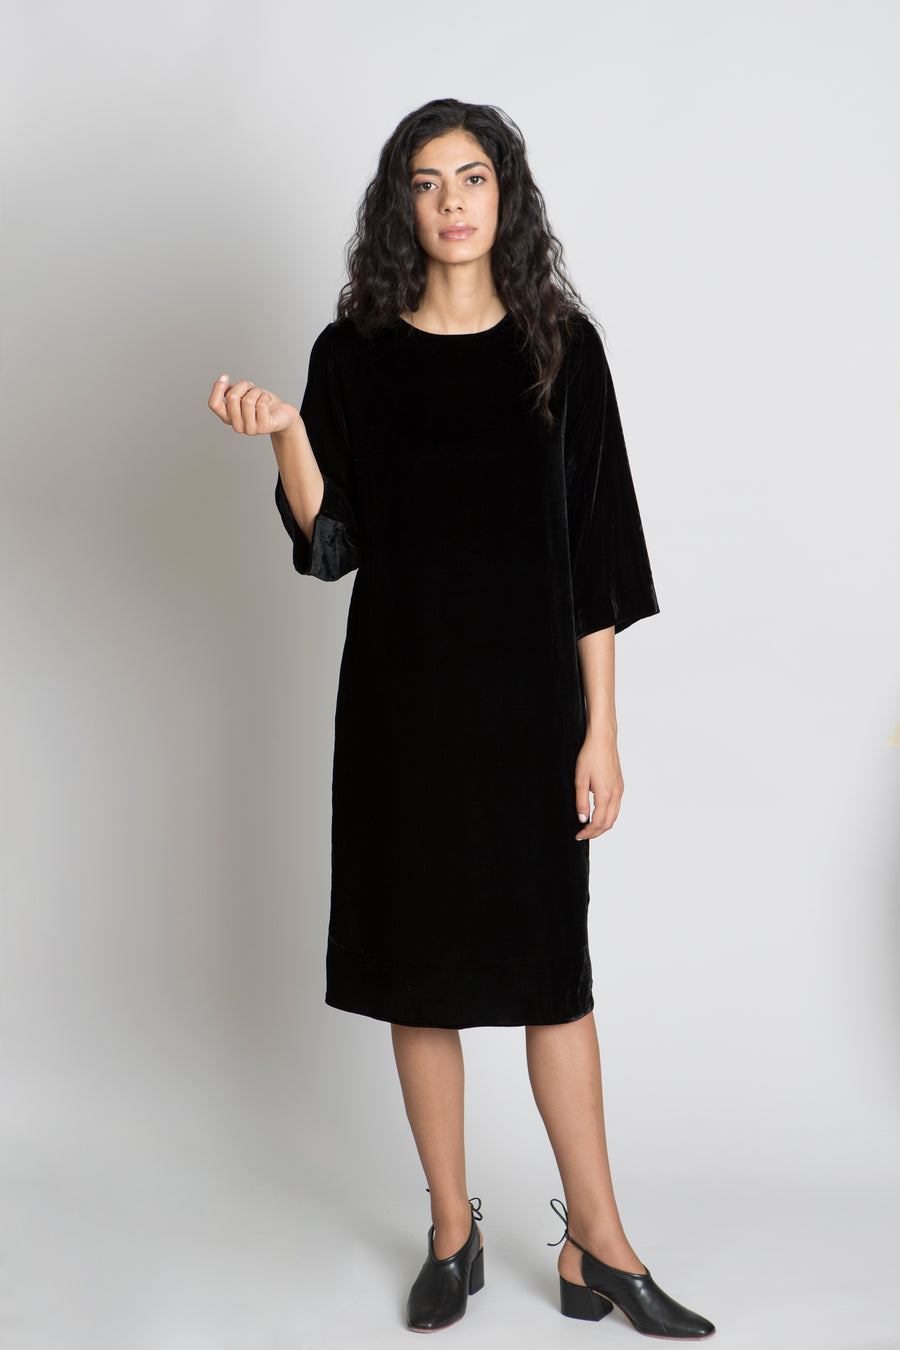 BLACK DIANA DRESS - SOLIKA